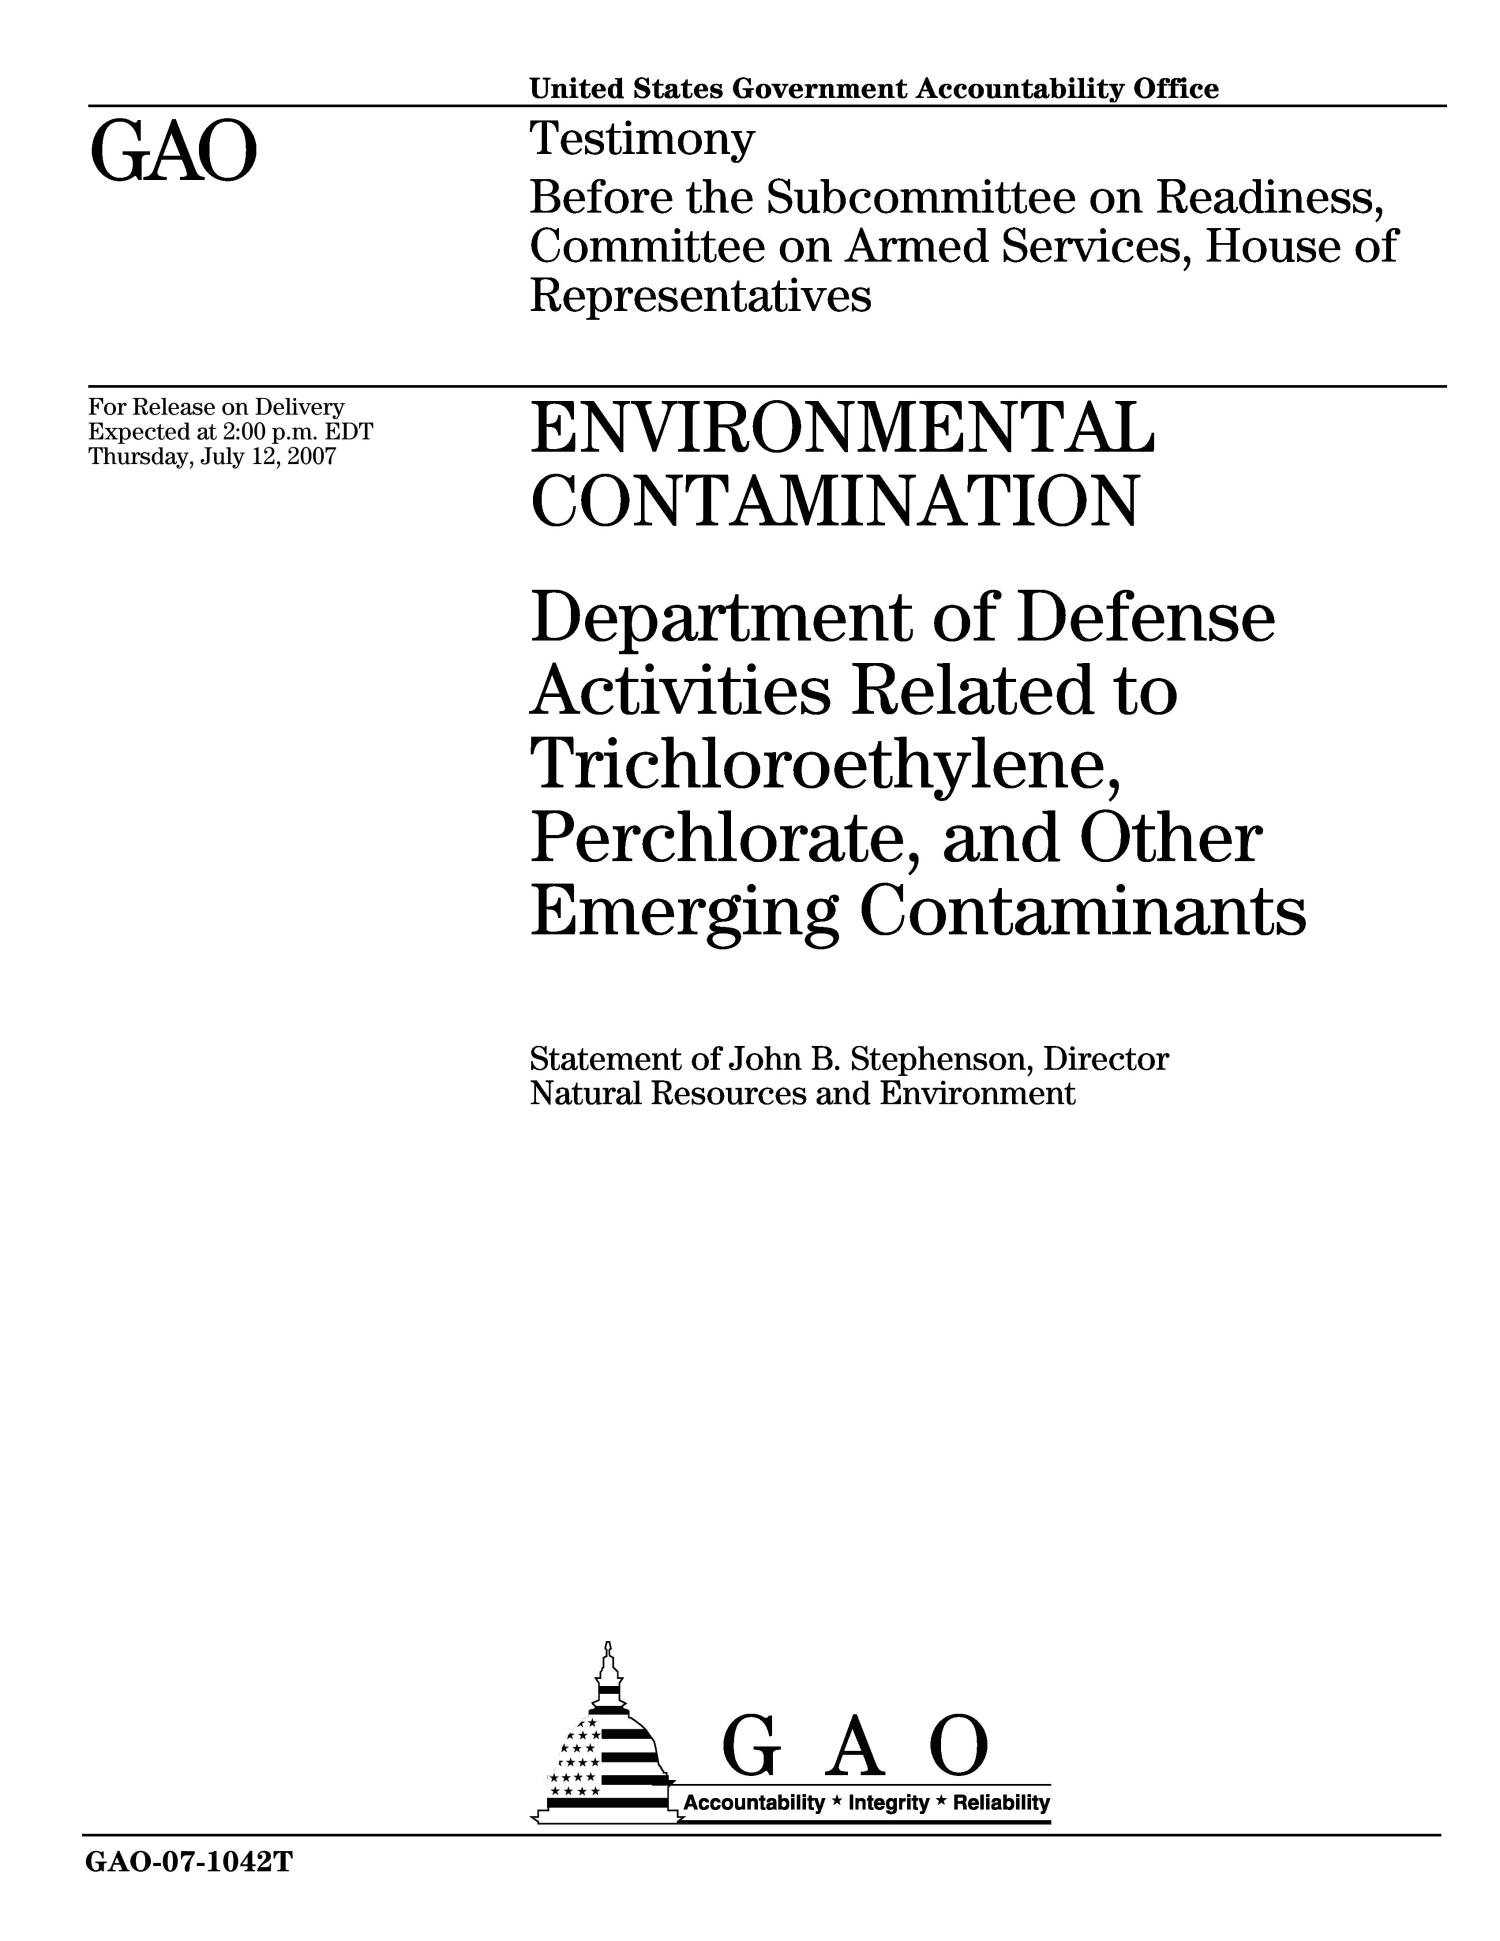 Environmental Contamination: Department of Defense Activities Related to Trichloroethylene, Perchlorate, and Other Emerging Contaminants                                                                                                      [Sequence #]: 1 of 22